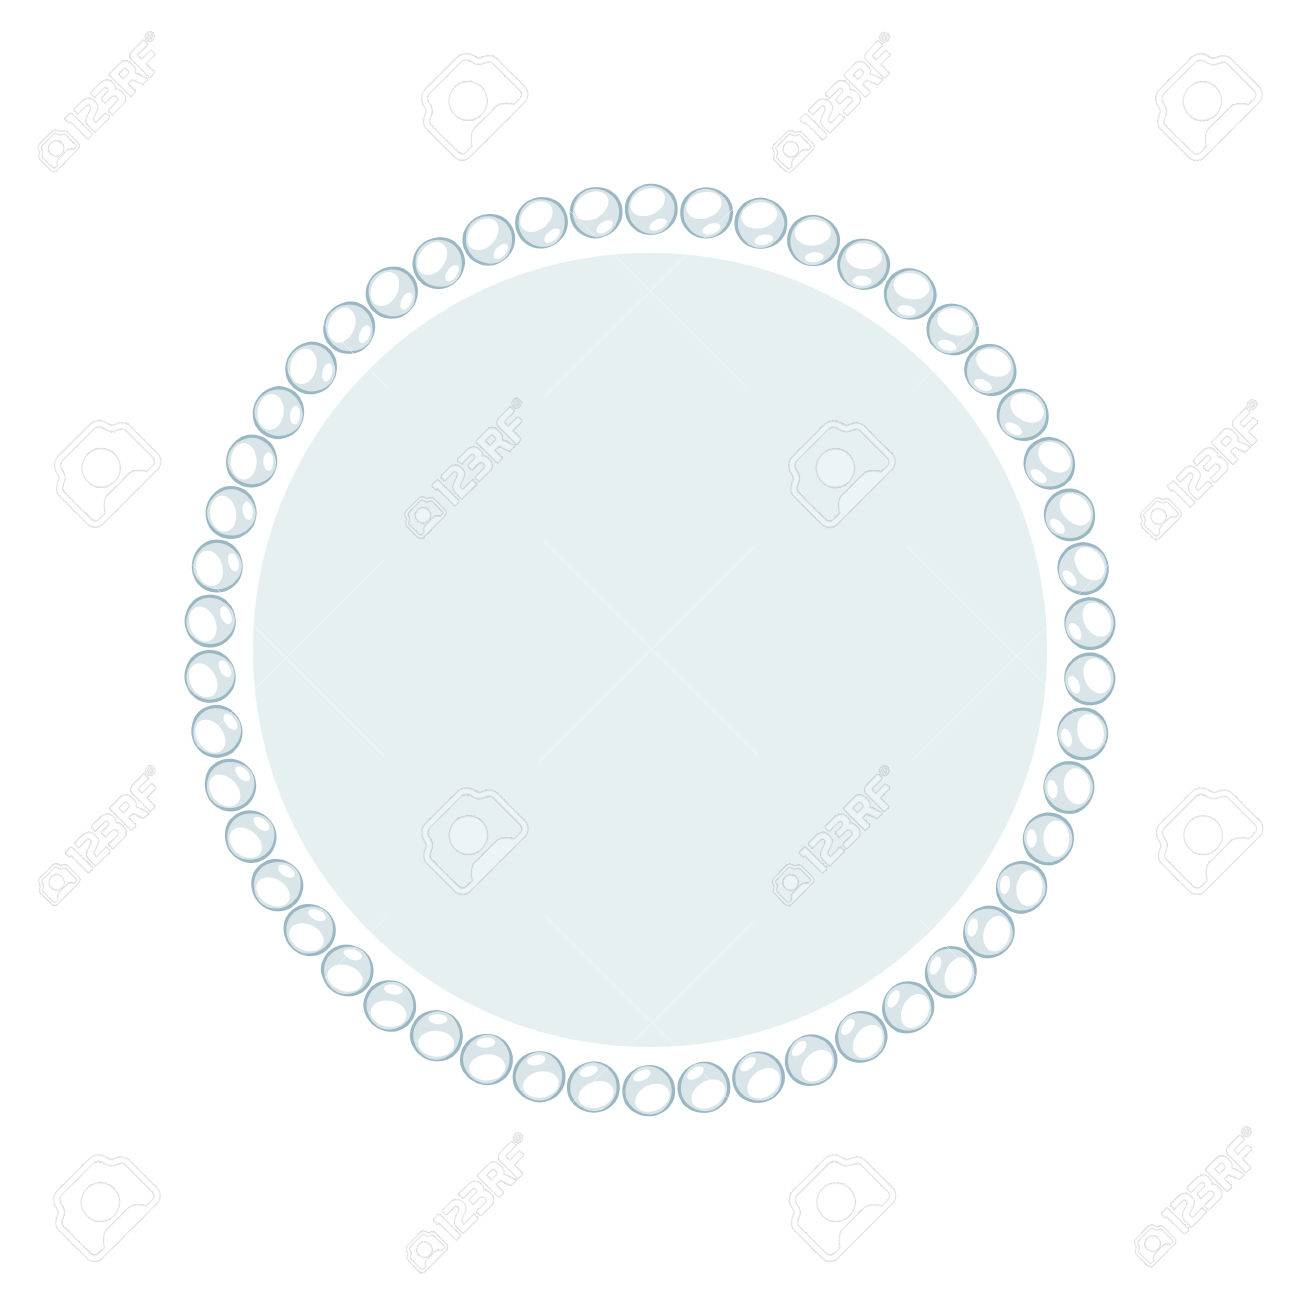 simple cartoon style round jewelry frame template good for greeting